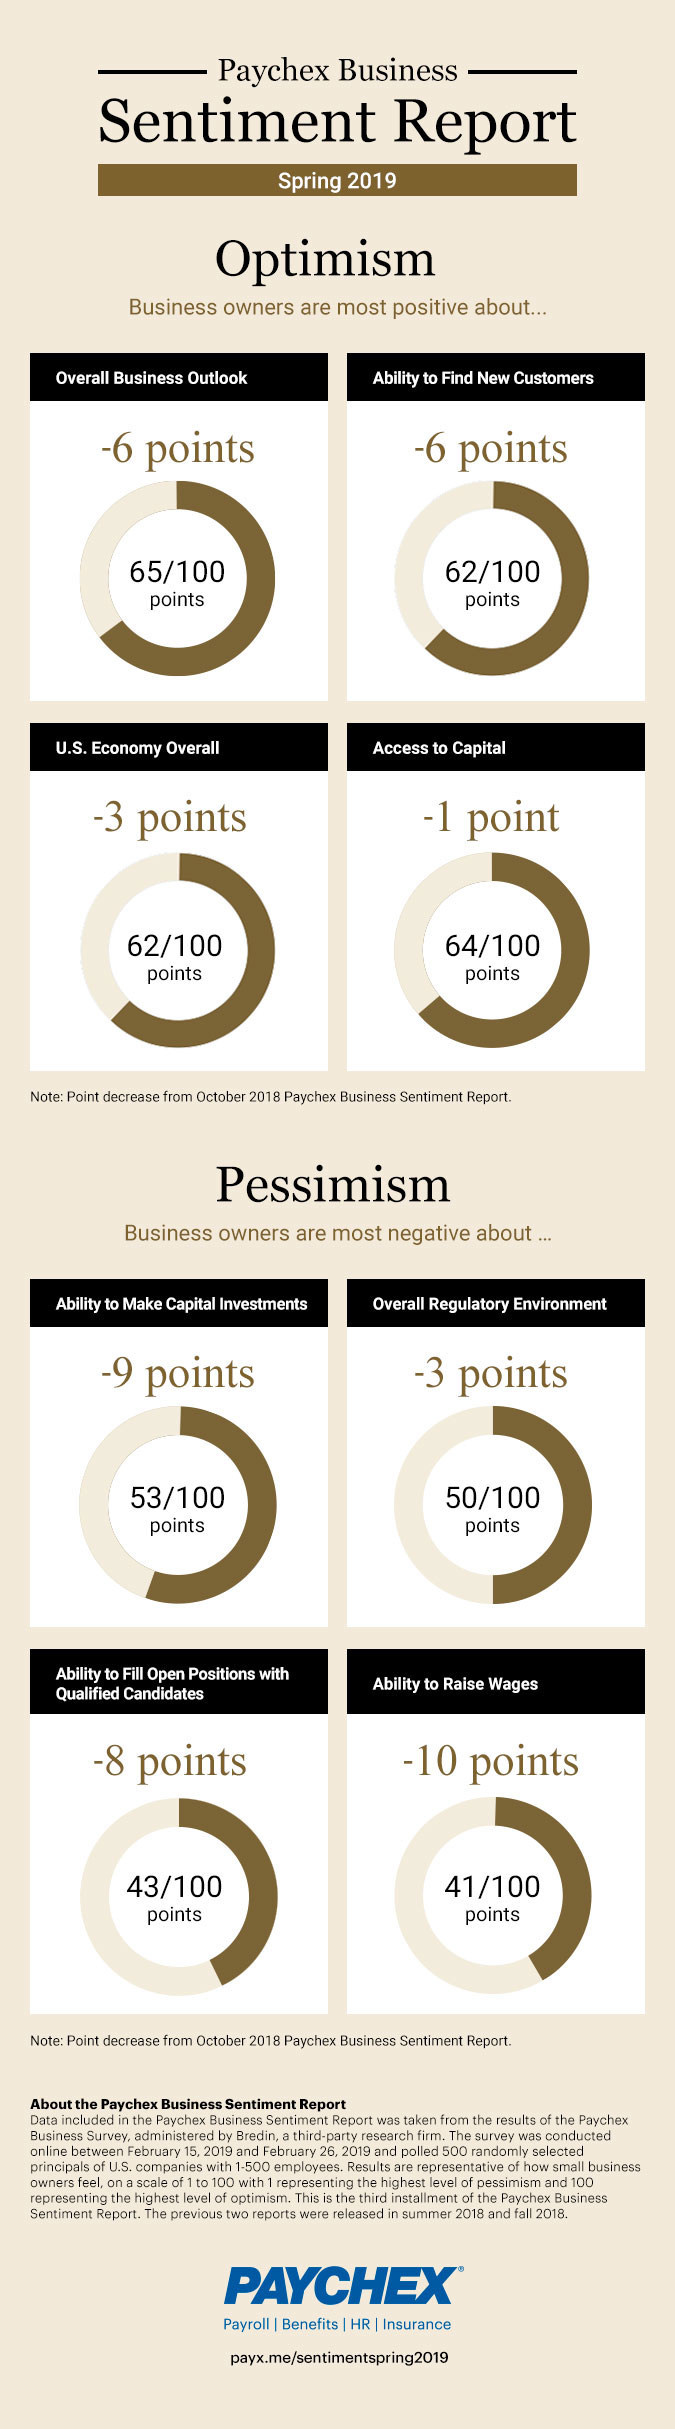 According to the most recent Paychex Business Sentiment report, business owners are most optimistic when it comes to general business outlook (65/100) and the U.S. economy (62/100).